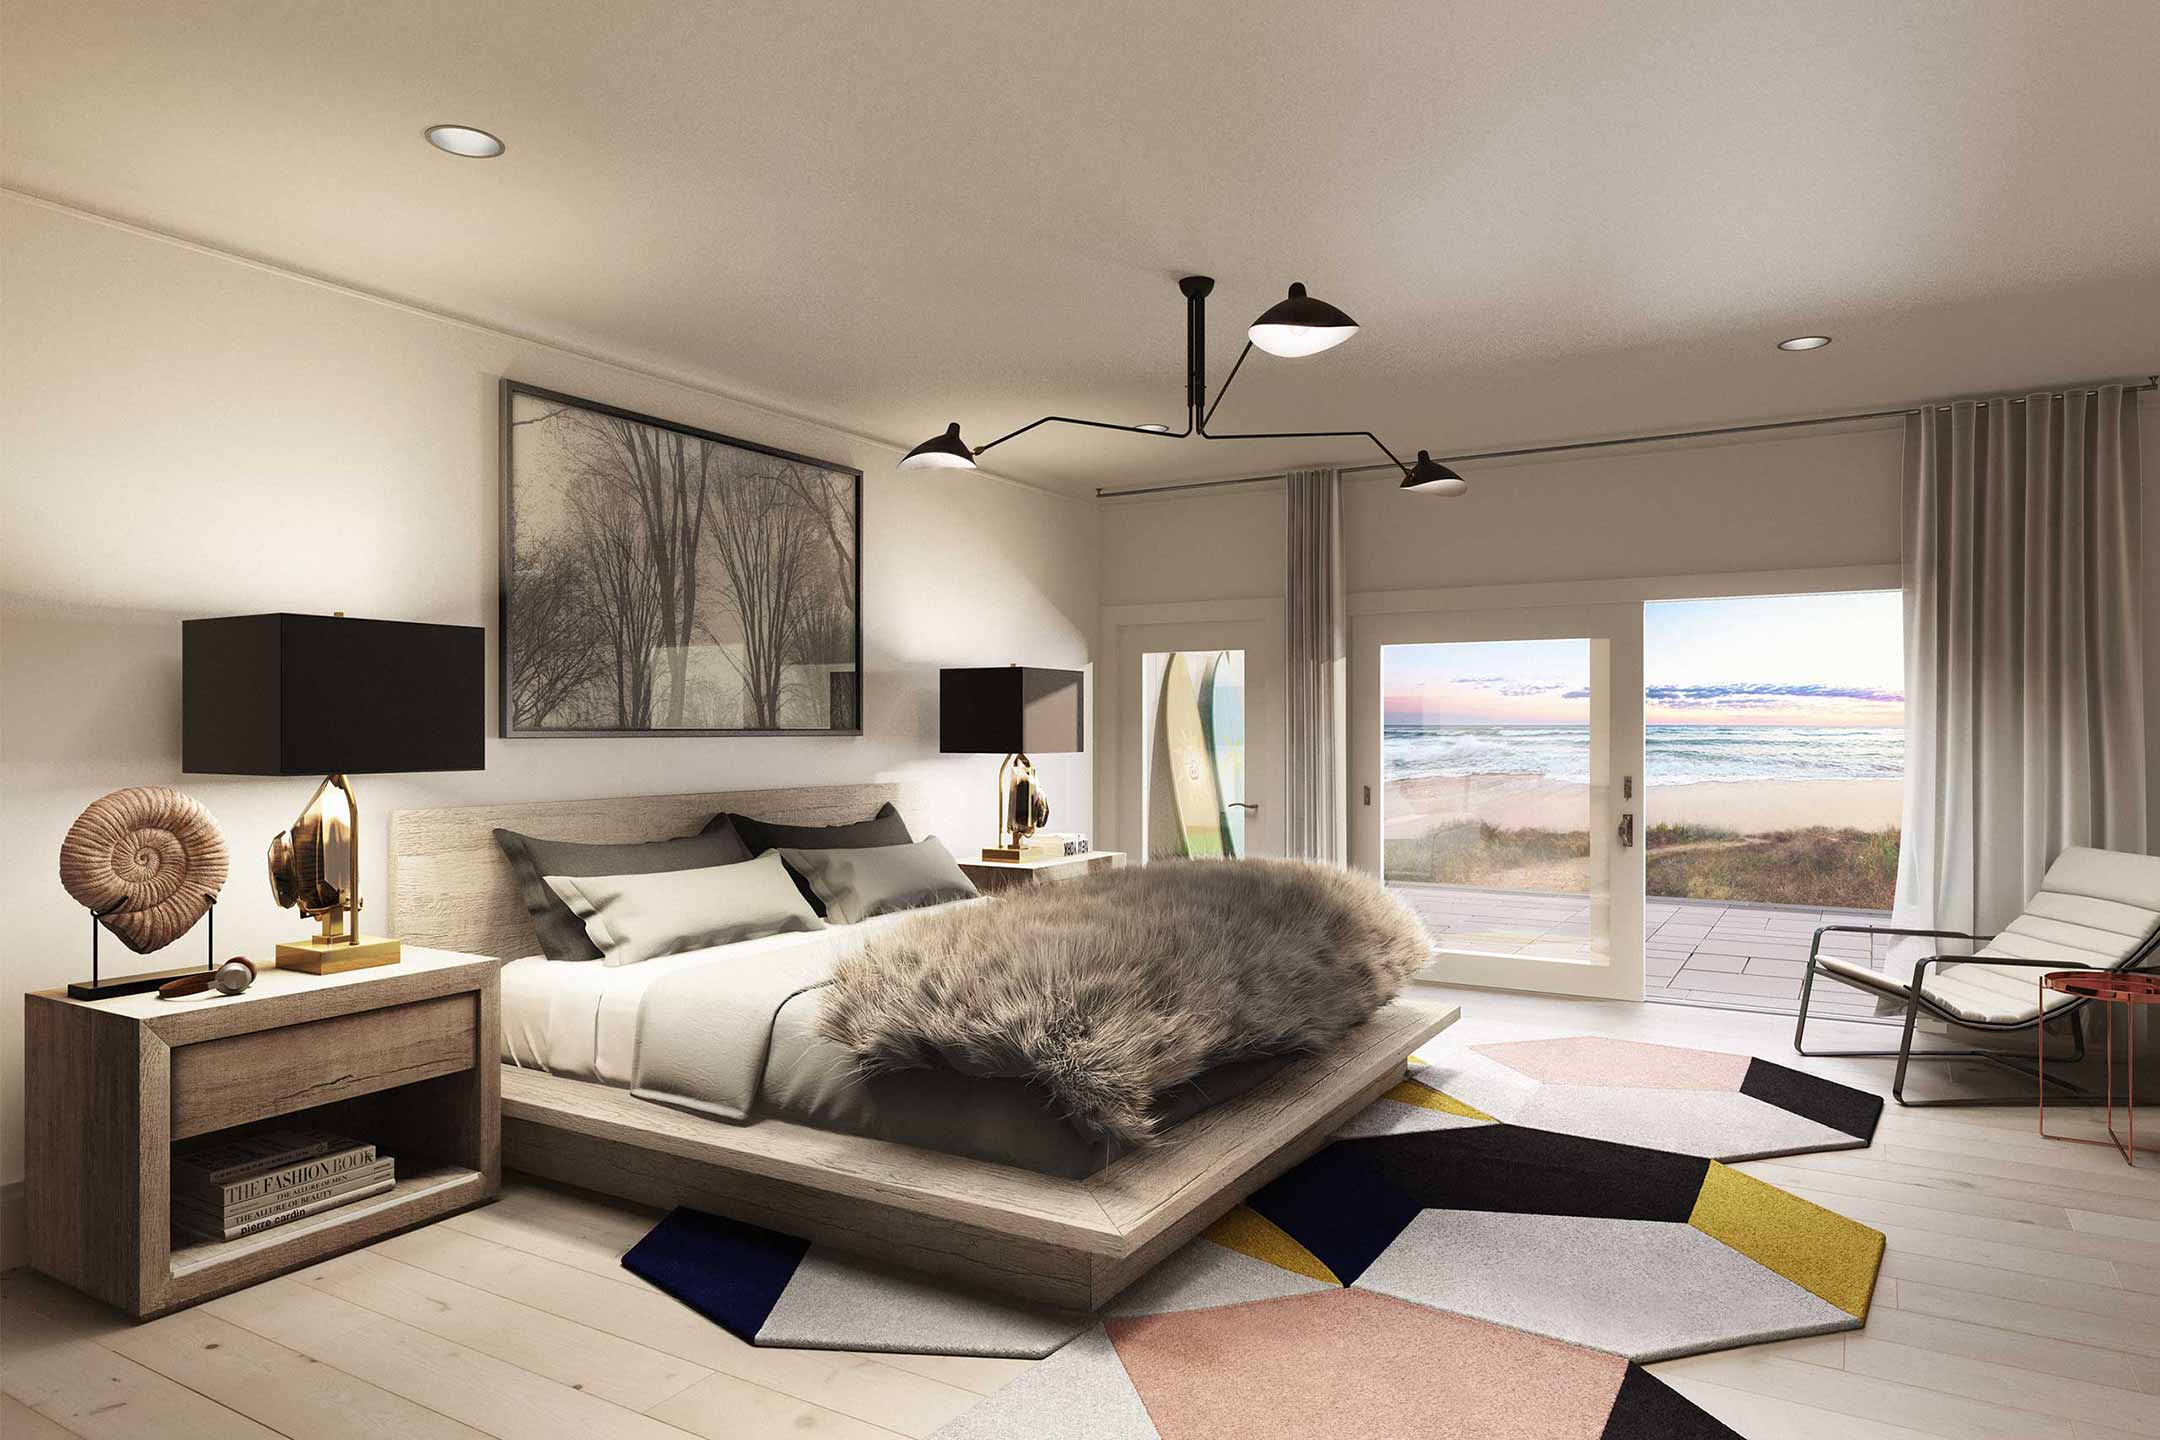 Bedroom rendering looking out to beach